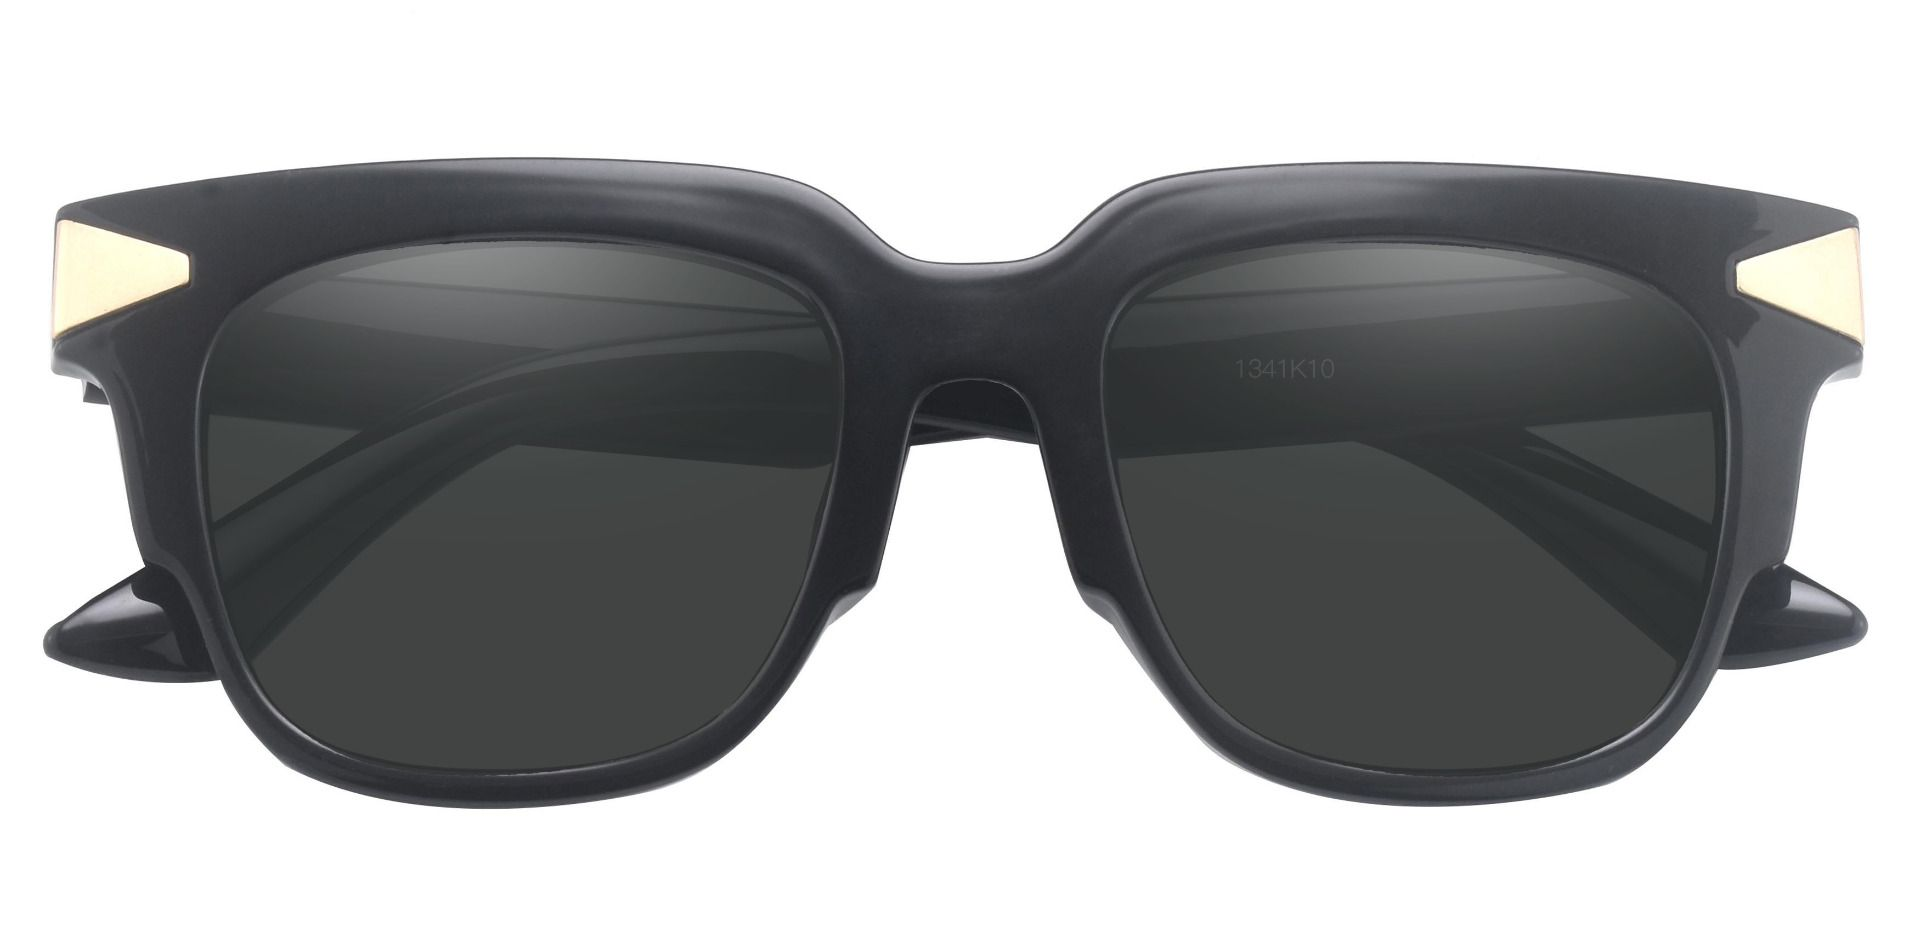 Ardent Square Non-Rx Sunglasses - Black Frame With Gray Lenses